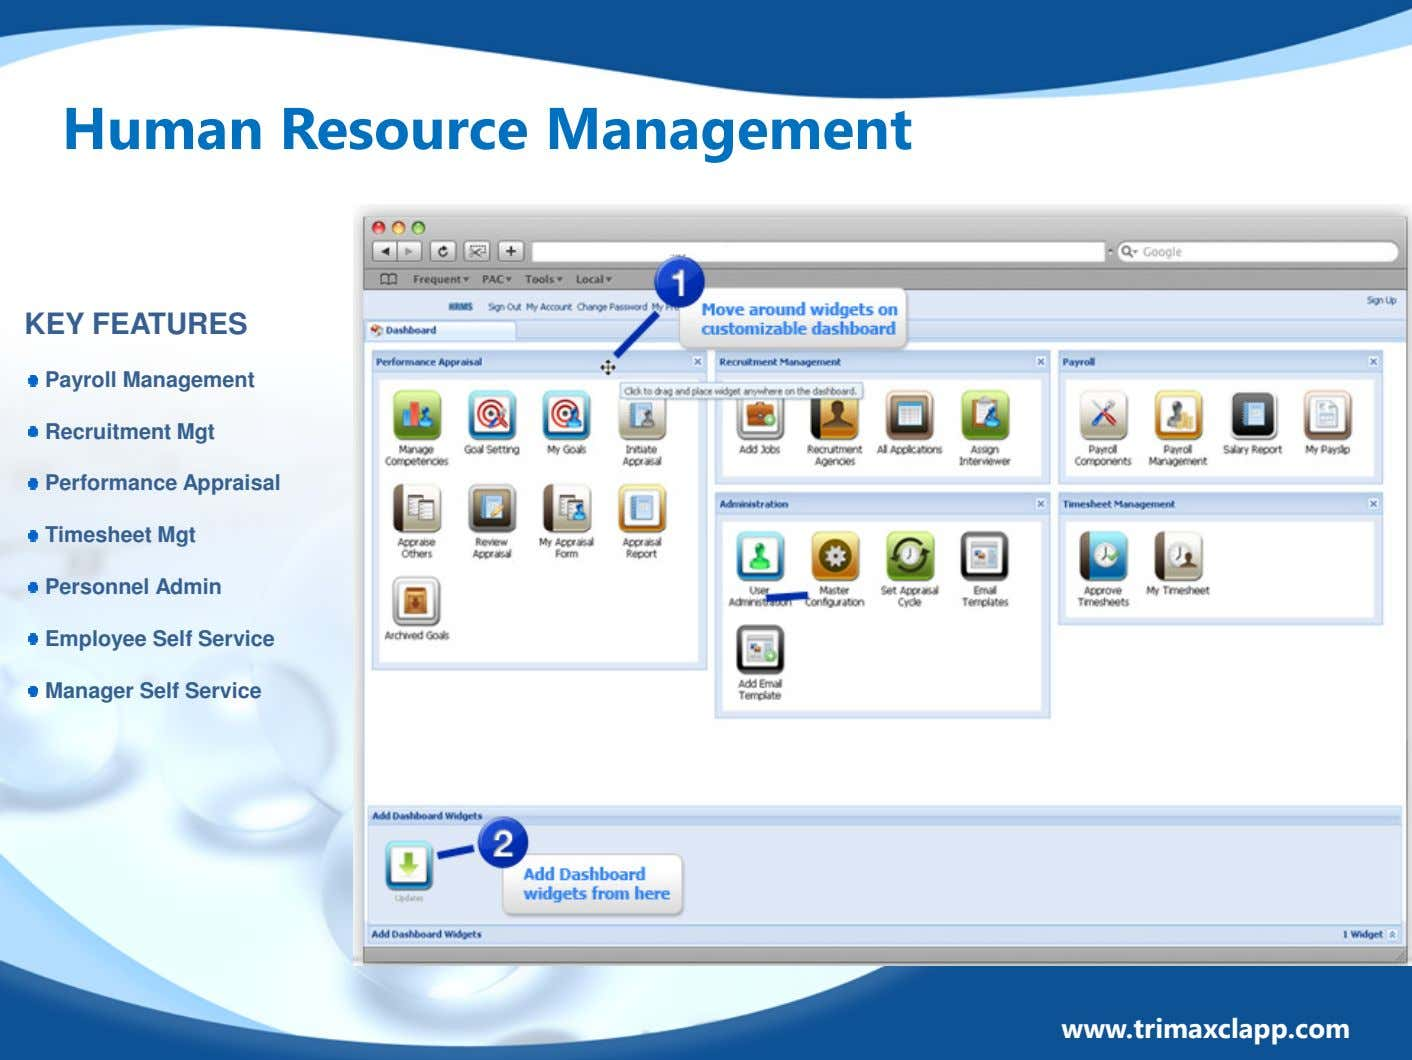 Human Resource Management KEY FEATURES Payroll Management Recruitment Mgt Performance Appraisal Timesheet Mgt